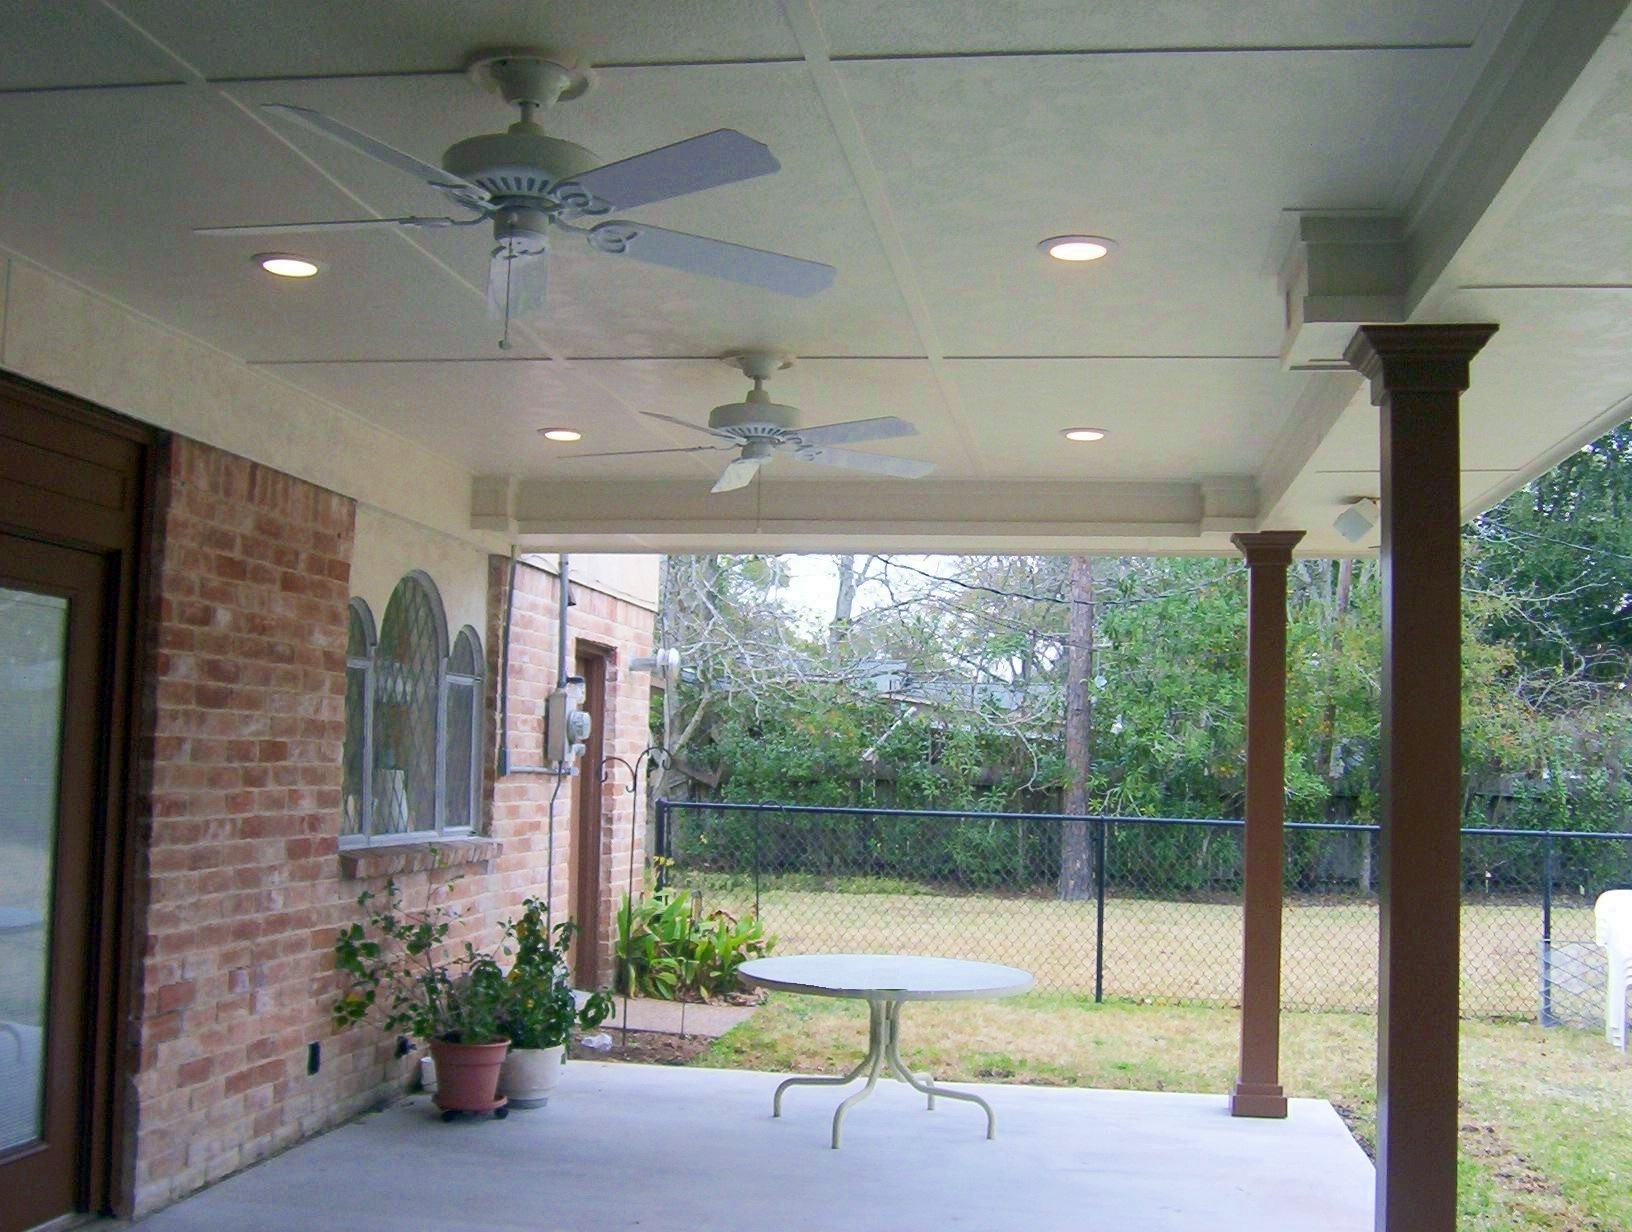 Inspiration about Recessed Lighting Porch Ceiling For Outdoor Ceiling Can Lights (#9 of 15)